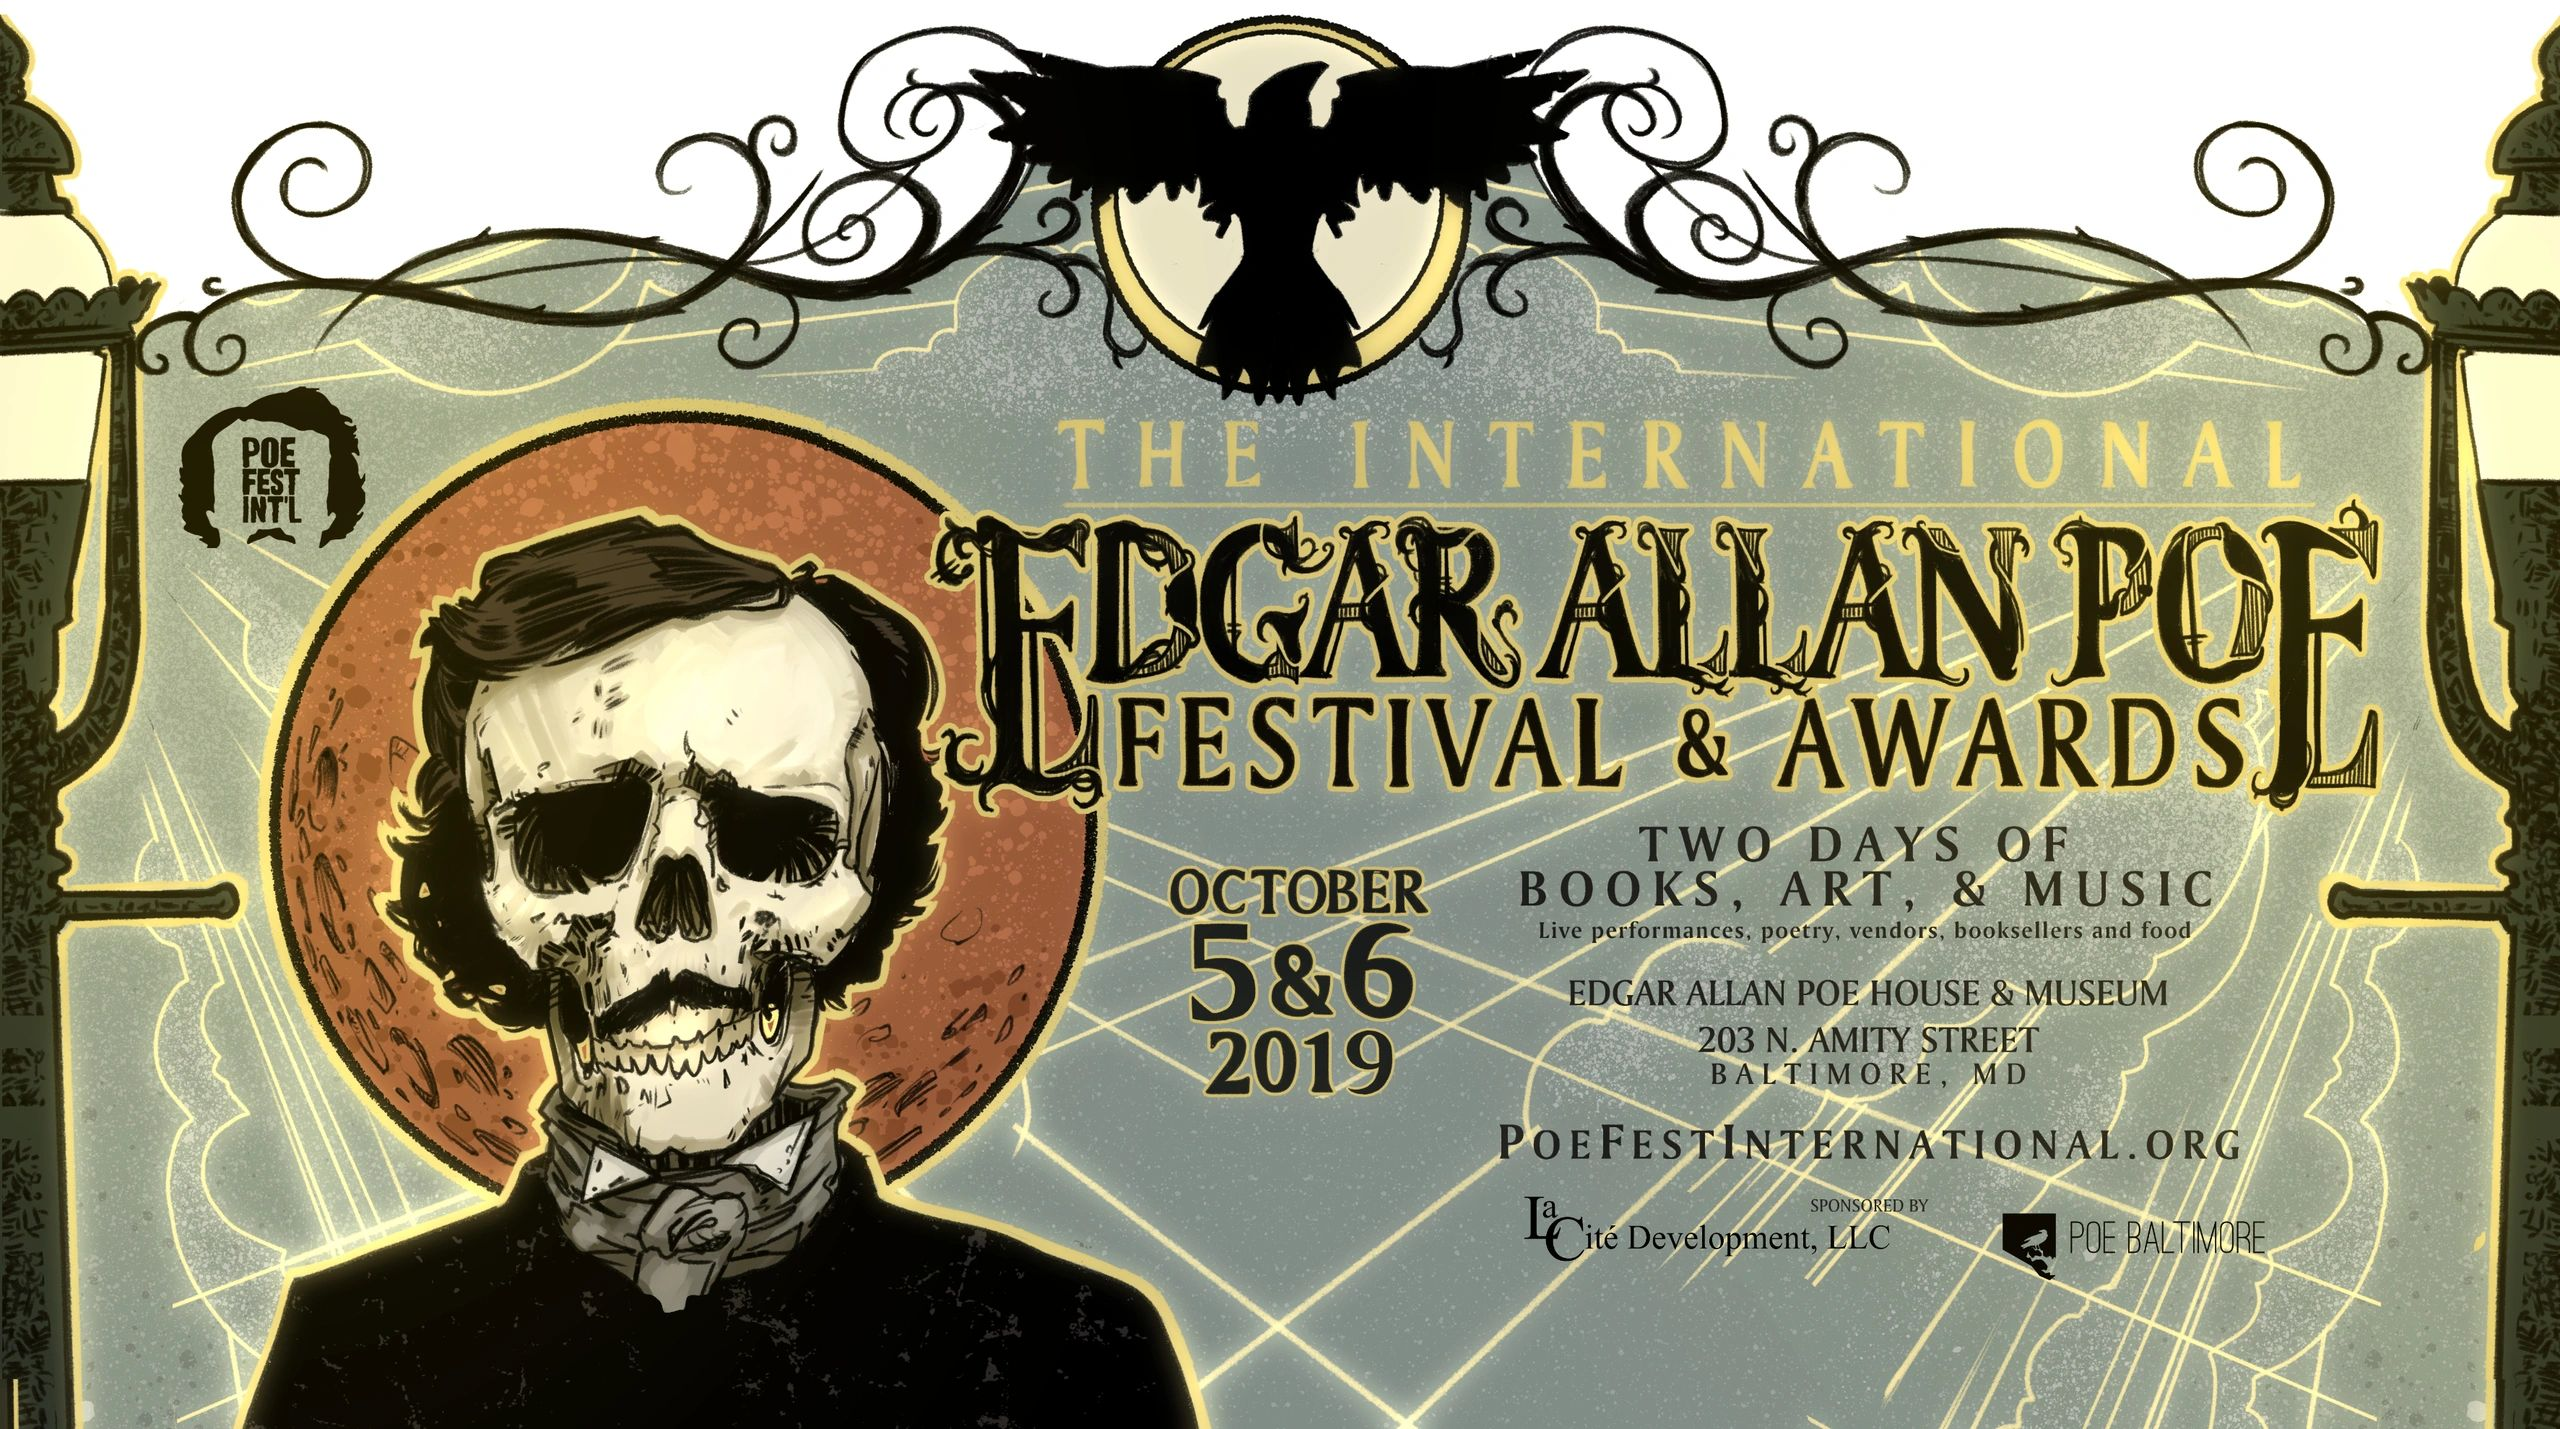 Poe Fest International is October 5 & 6, 2019